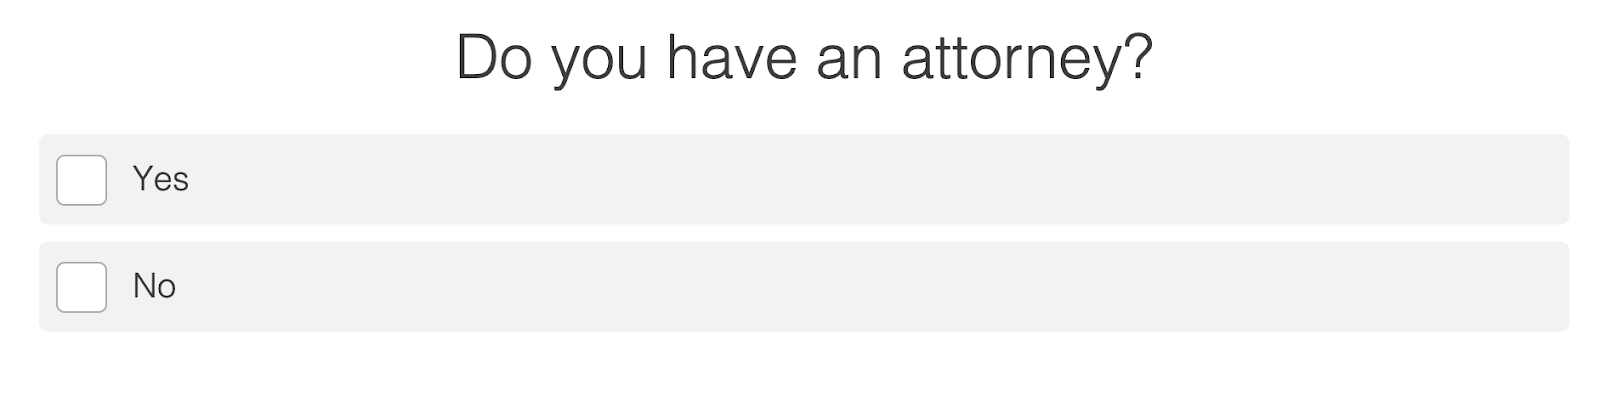 Do you have an attorney quiz question